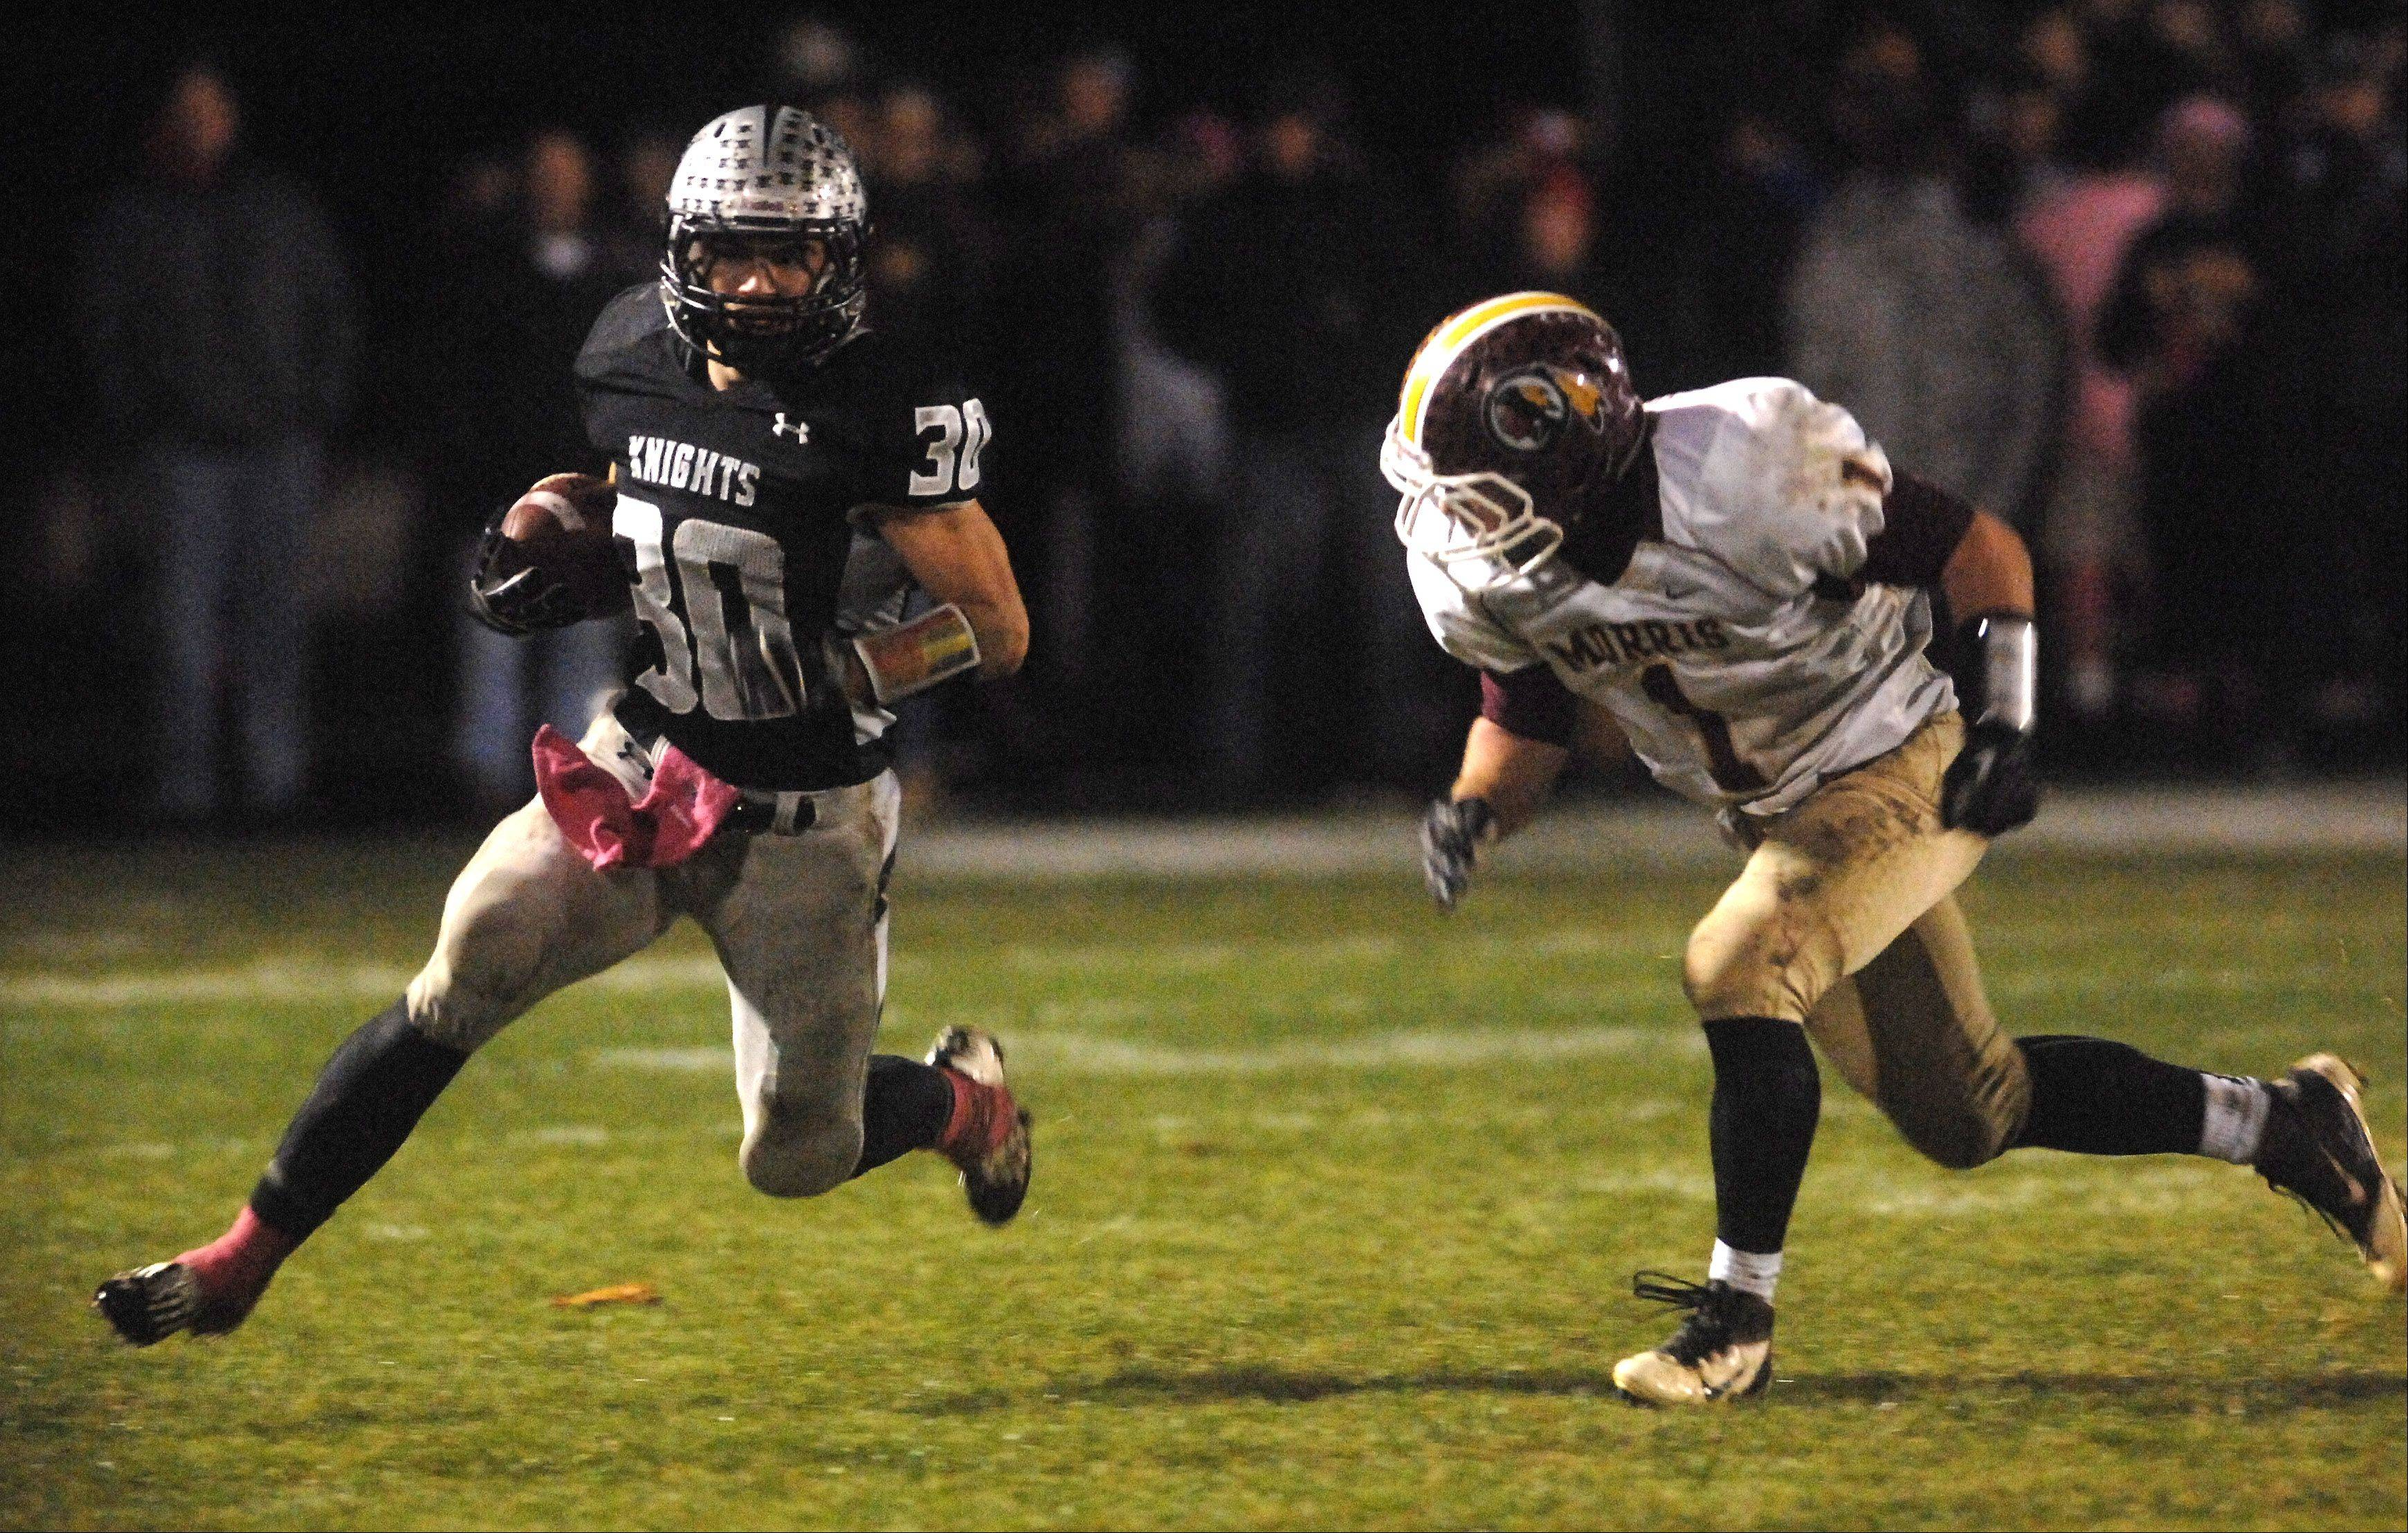 Kaneland's Jesse Balluff picks up a big gain as he gets around Morris' Jake Hogan during Friday's game in Maple Park.